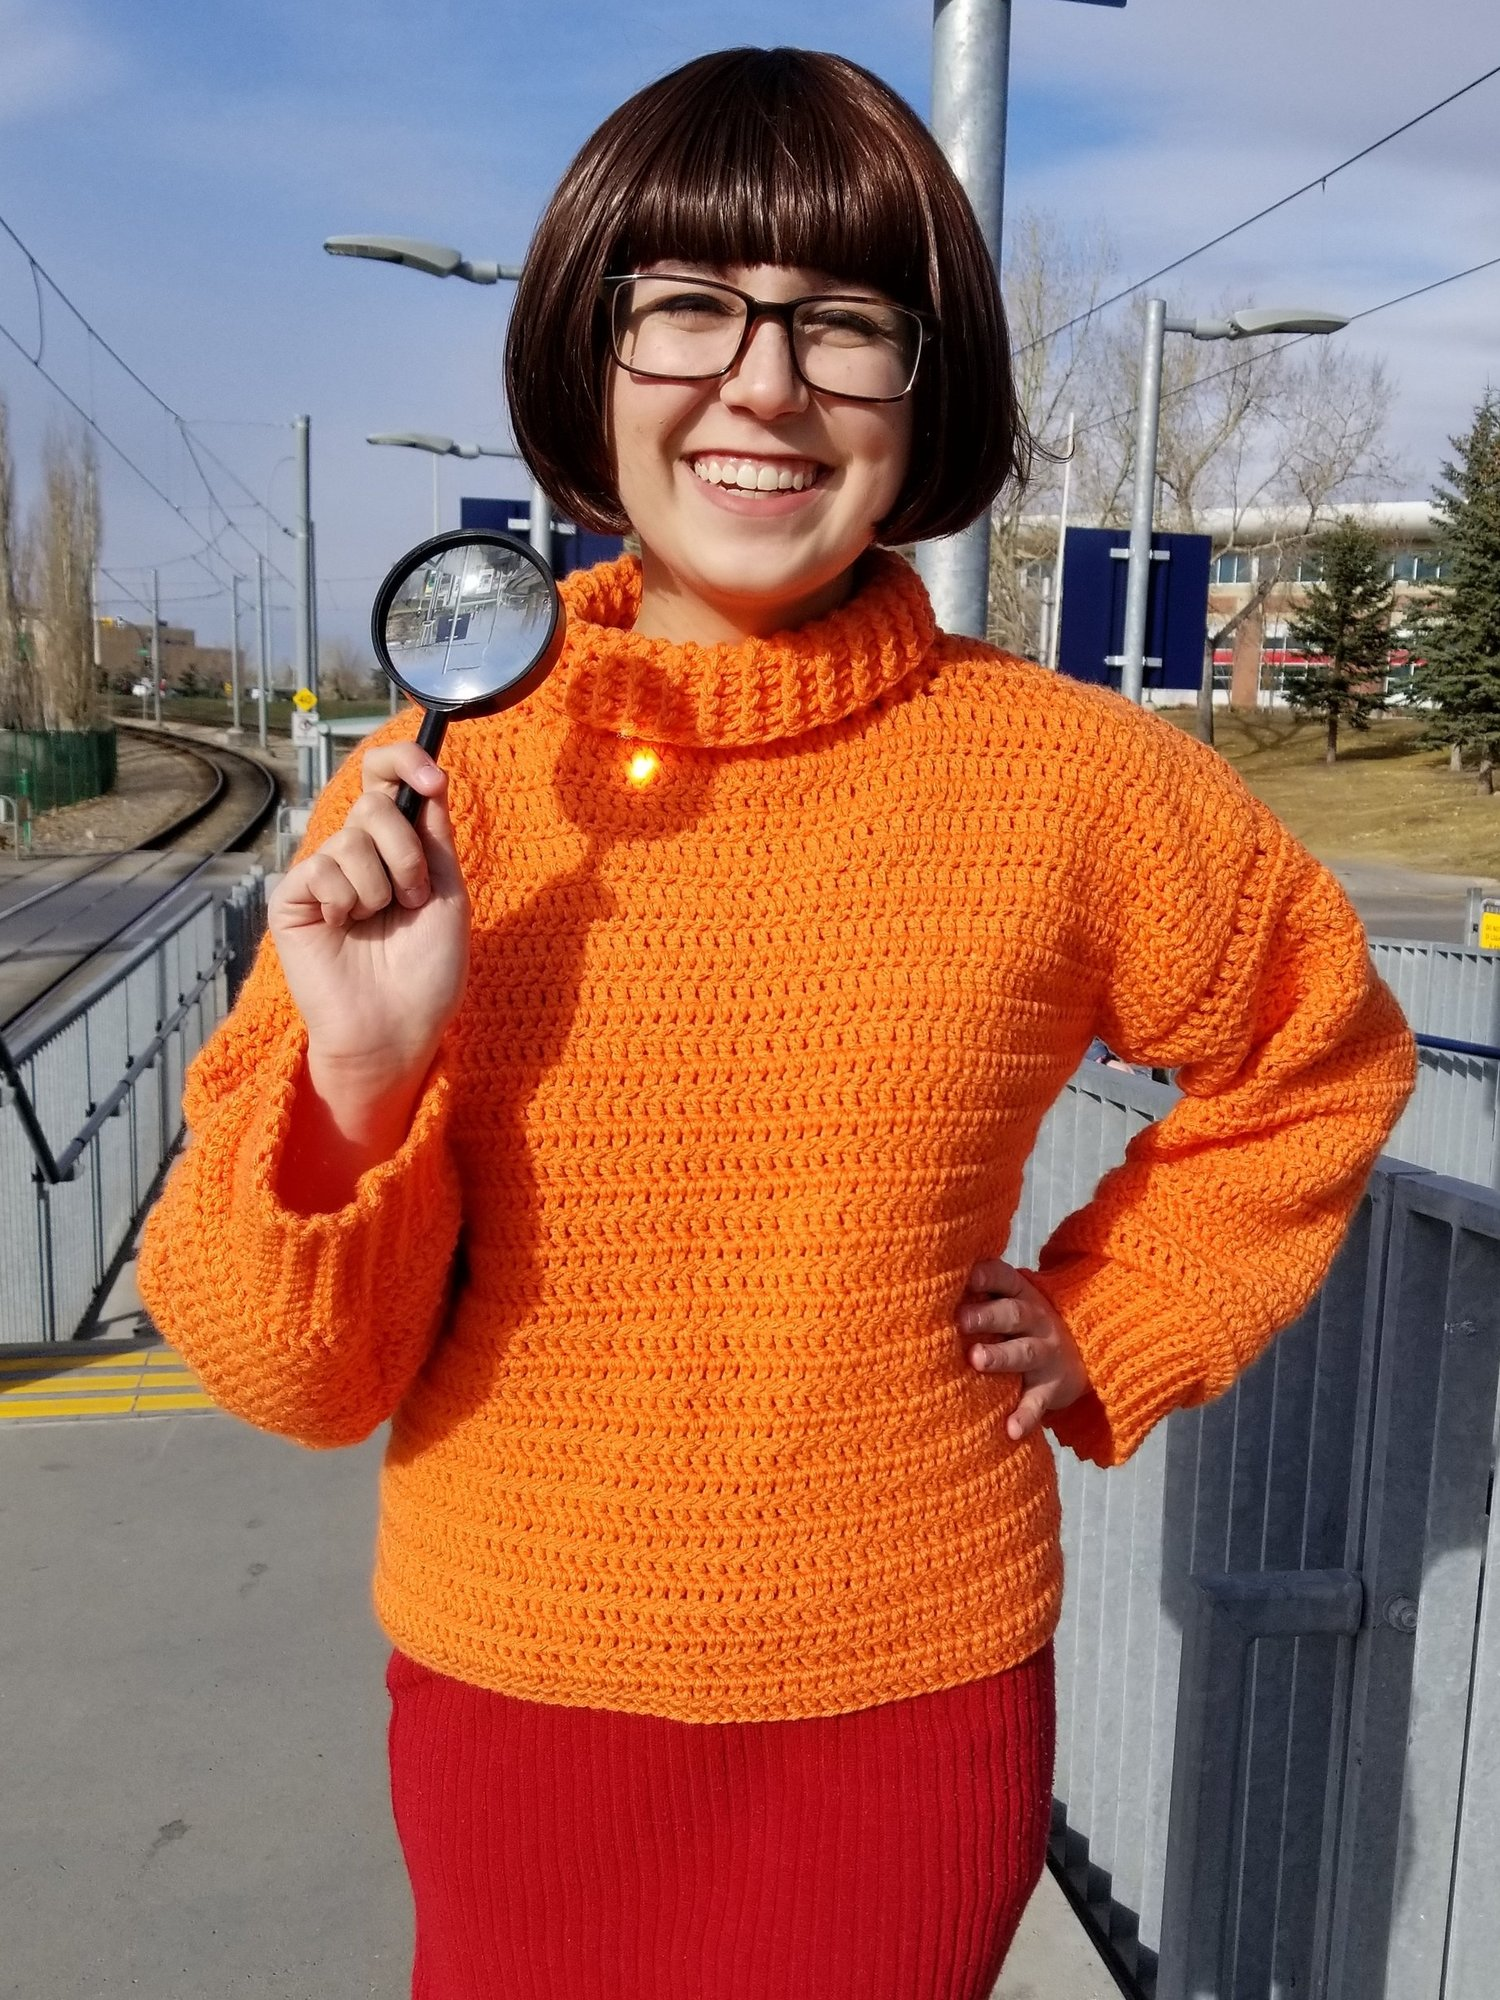 Jinkies! Scooby Found A Clue and It Leads To This FREE Velma Cosplay Pattern For Crocheters!